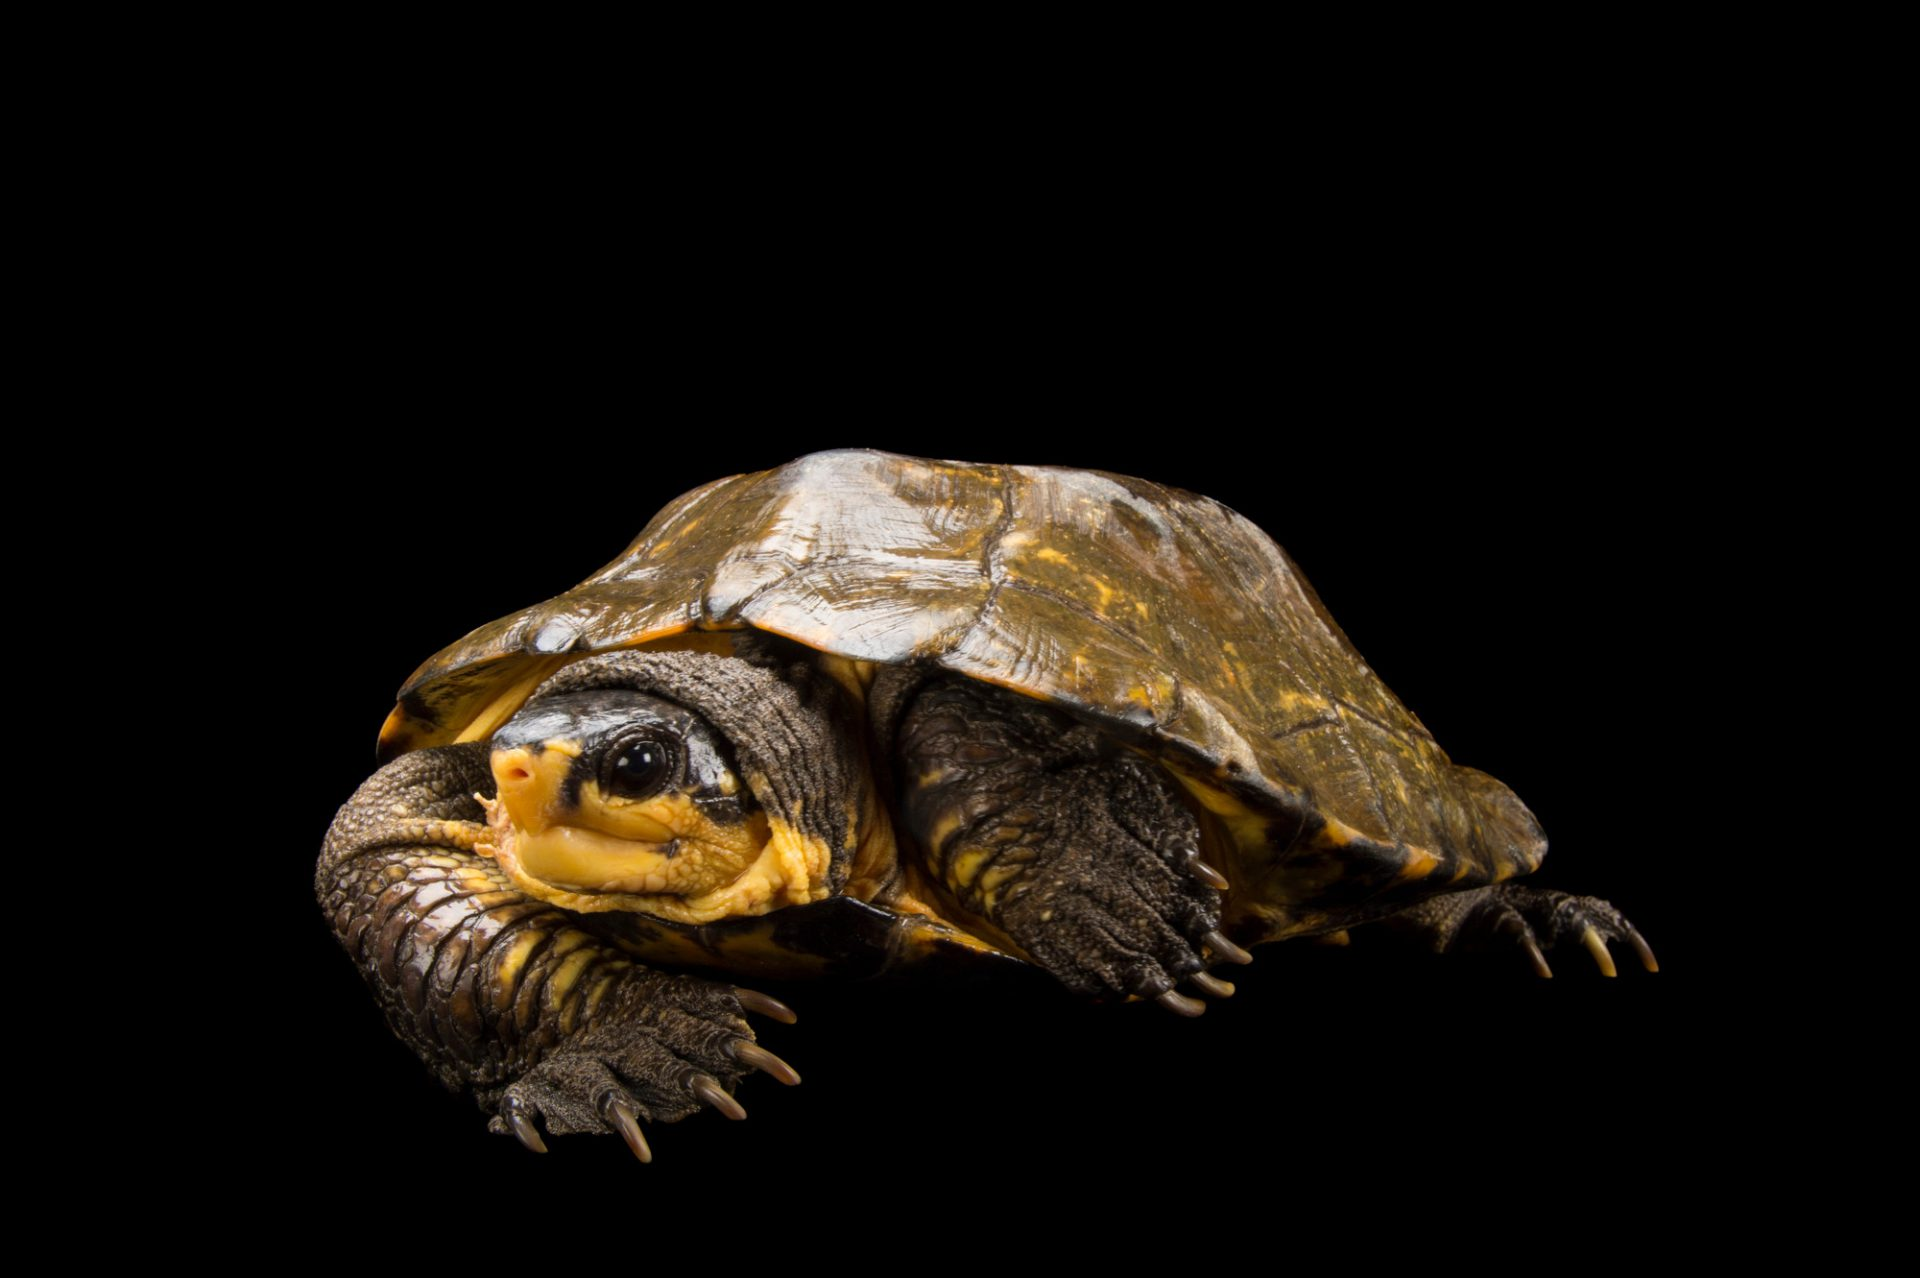 Picture of a vulnerable Malayan flat shelled turtle (Notochelys platynota) at the Knoxville Zoo.